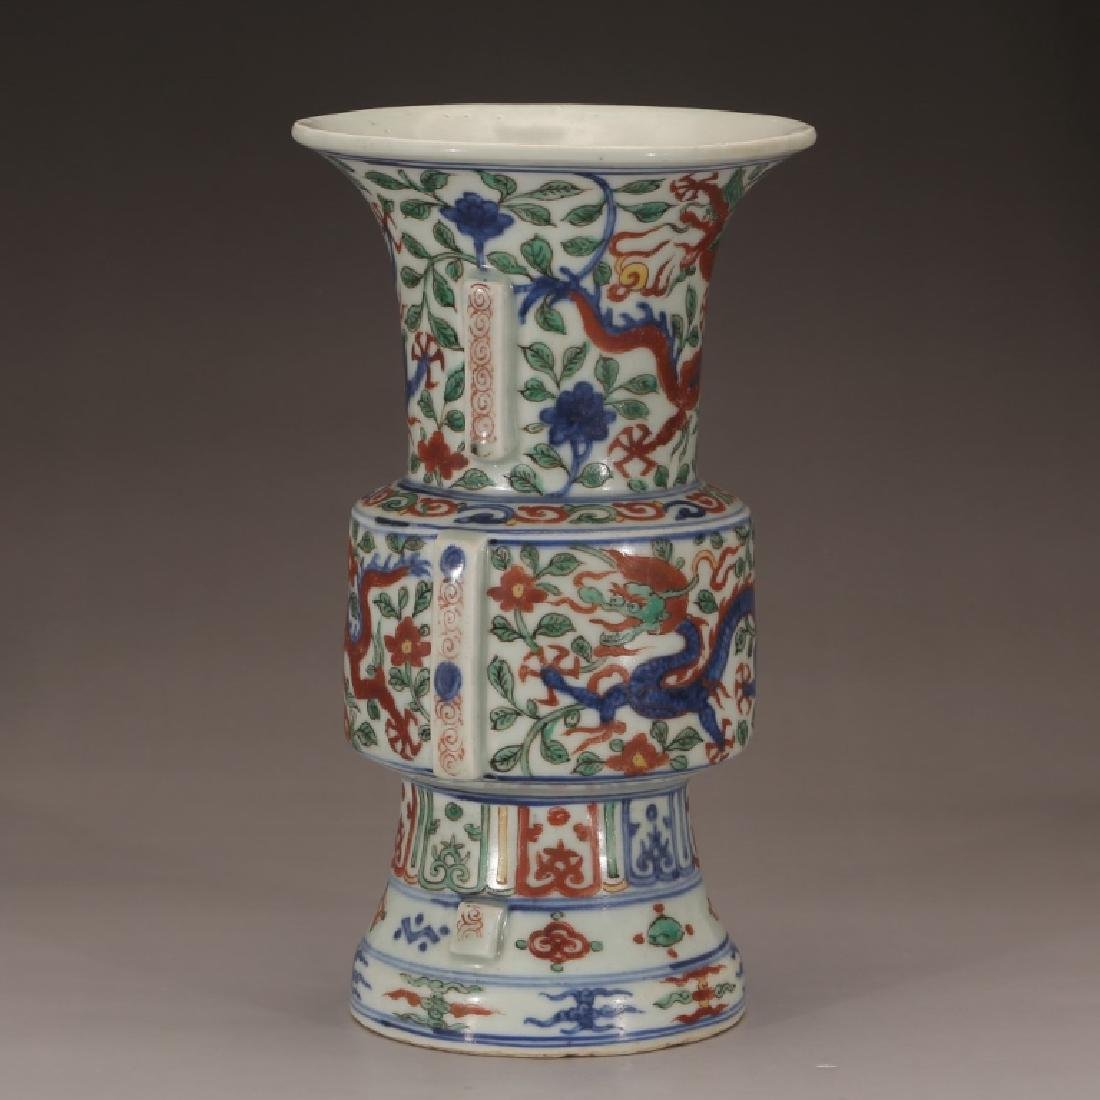 Chinese Qing Dynasty Archaic Wucai Porcelain Vase - 2